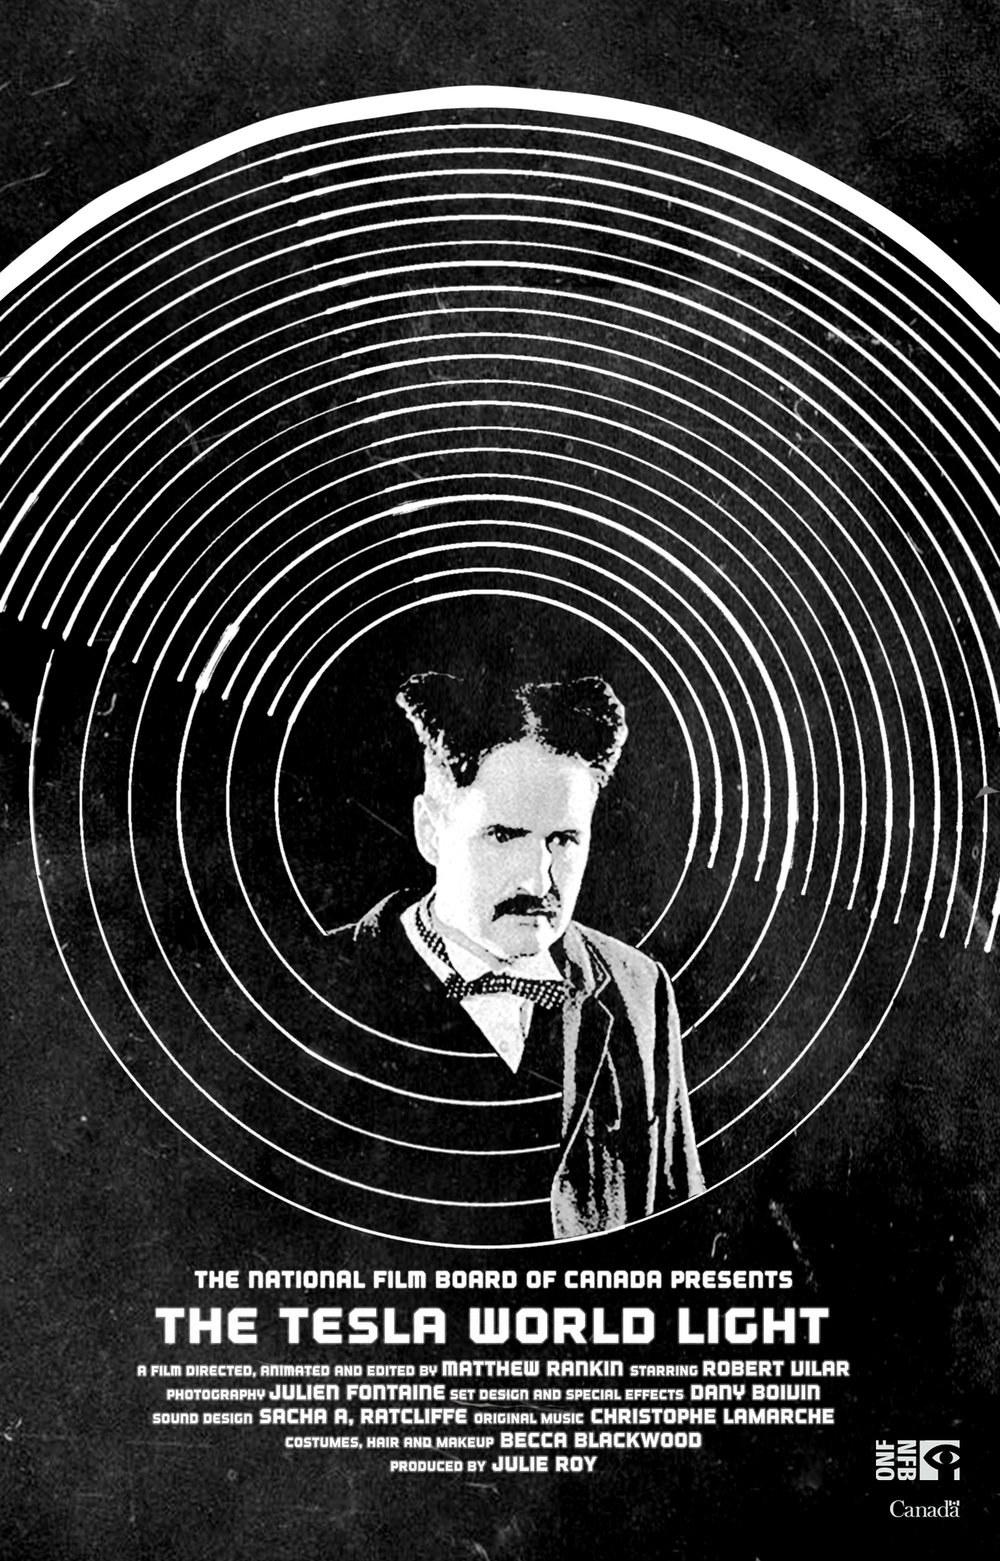 "TESLA: WORLD LIGHT - Sound DesignerNew York, 1905. Visionary inventor Nikola Tesla makes one last appeal to J.P. Morgan, his onetime benefactor. The Tesla World Light is a tragic fantasy about the father of alternating current, inspired by real events such as the inventor's run of bad luck as a businessman and his affection for a pet bird, which he loves ""like a man loves a woman."" Tesla's words to the banker form the backdrop of this moving film about the man who blended science and art in his attempts to create the utopia of unlimited energy for all.Directed by Matthew Rankin.Produced by Julie Roy, The National Film Board of Canada."